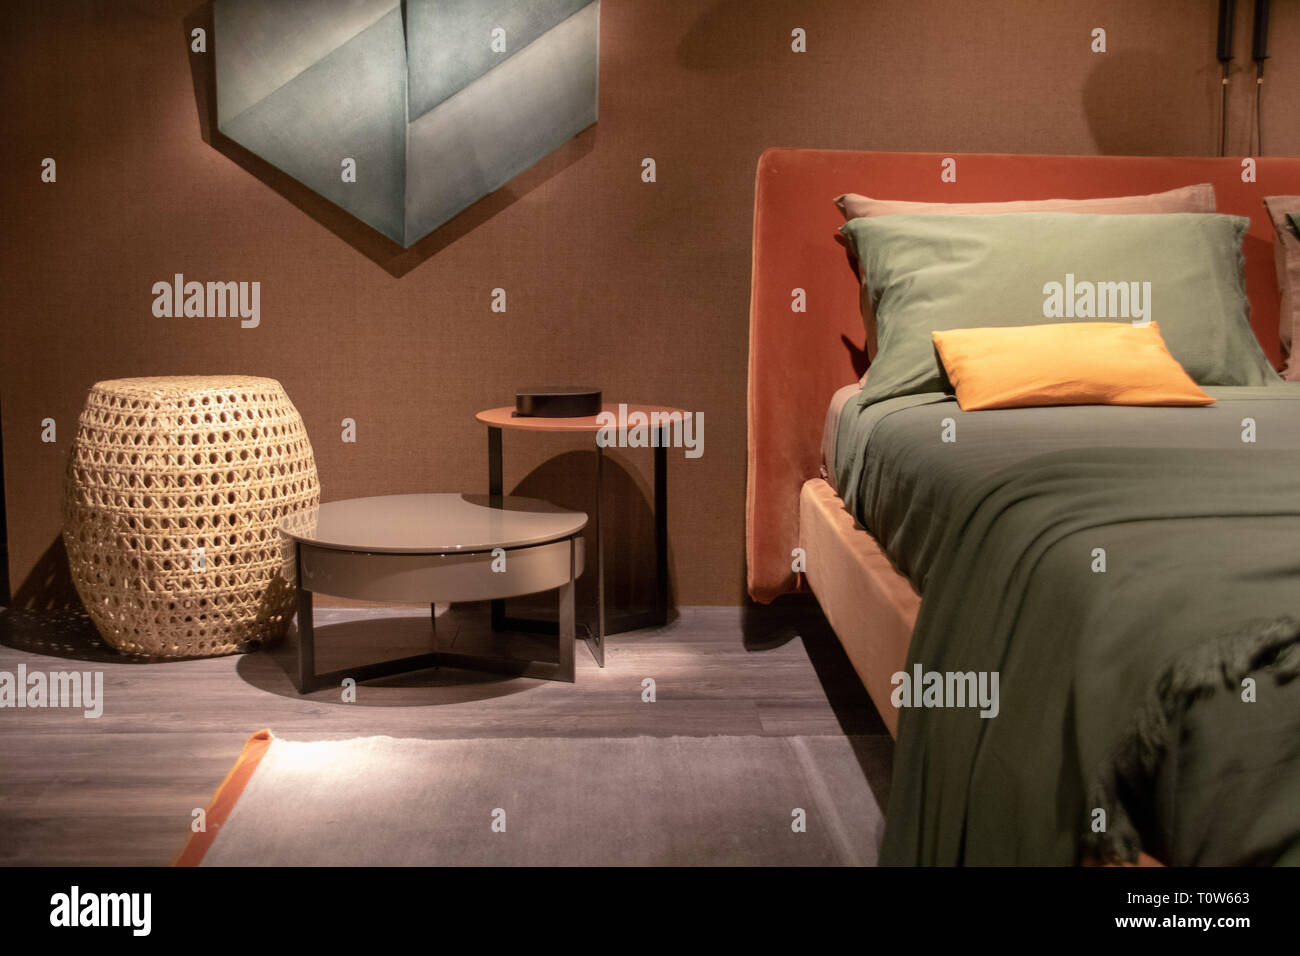 Showroom Bedroom Setup With Brown Background Wall Stock Photo Alamy